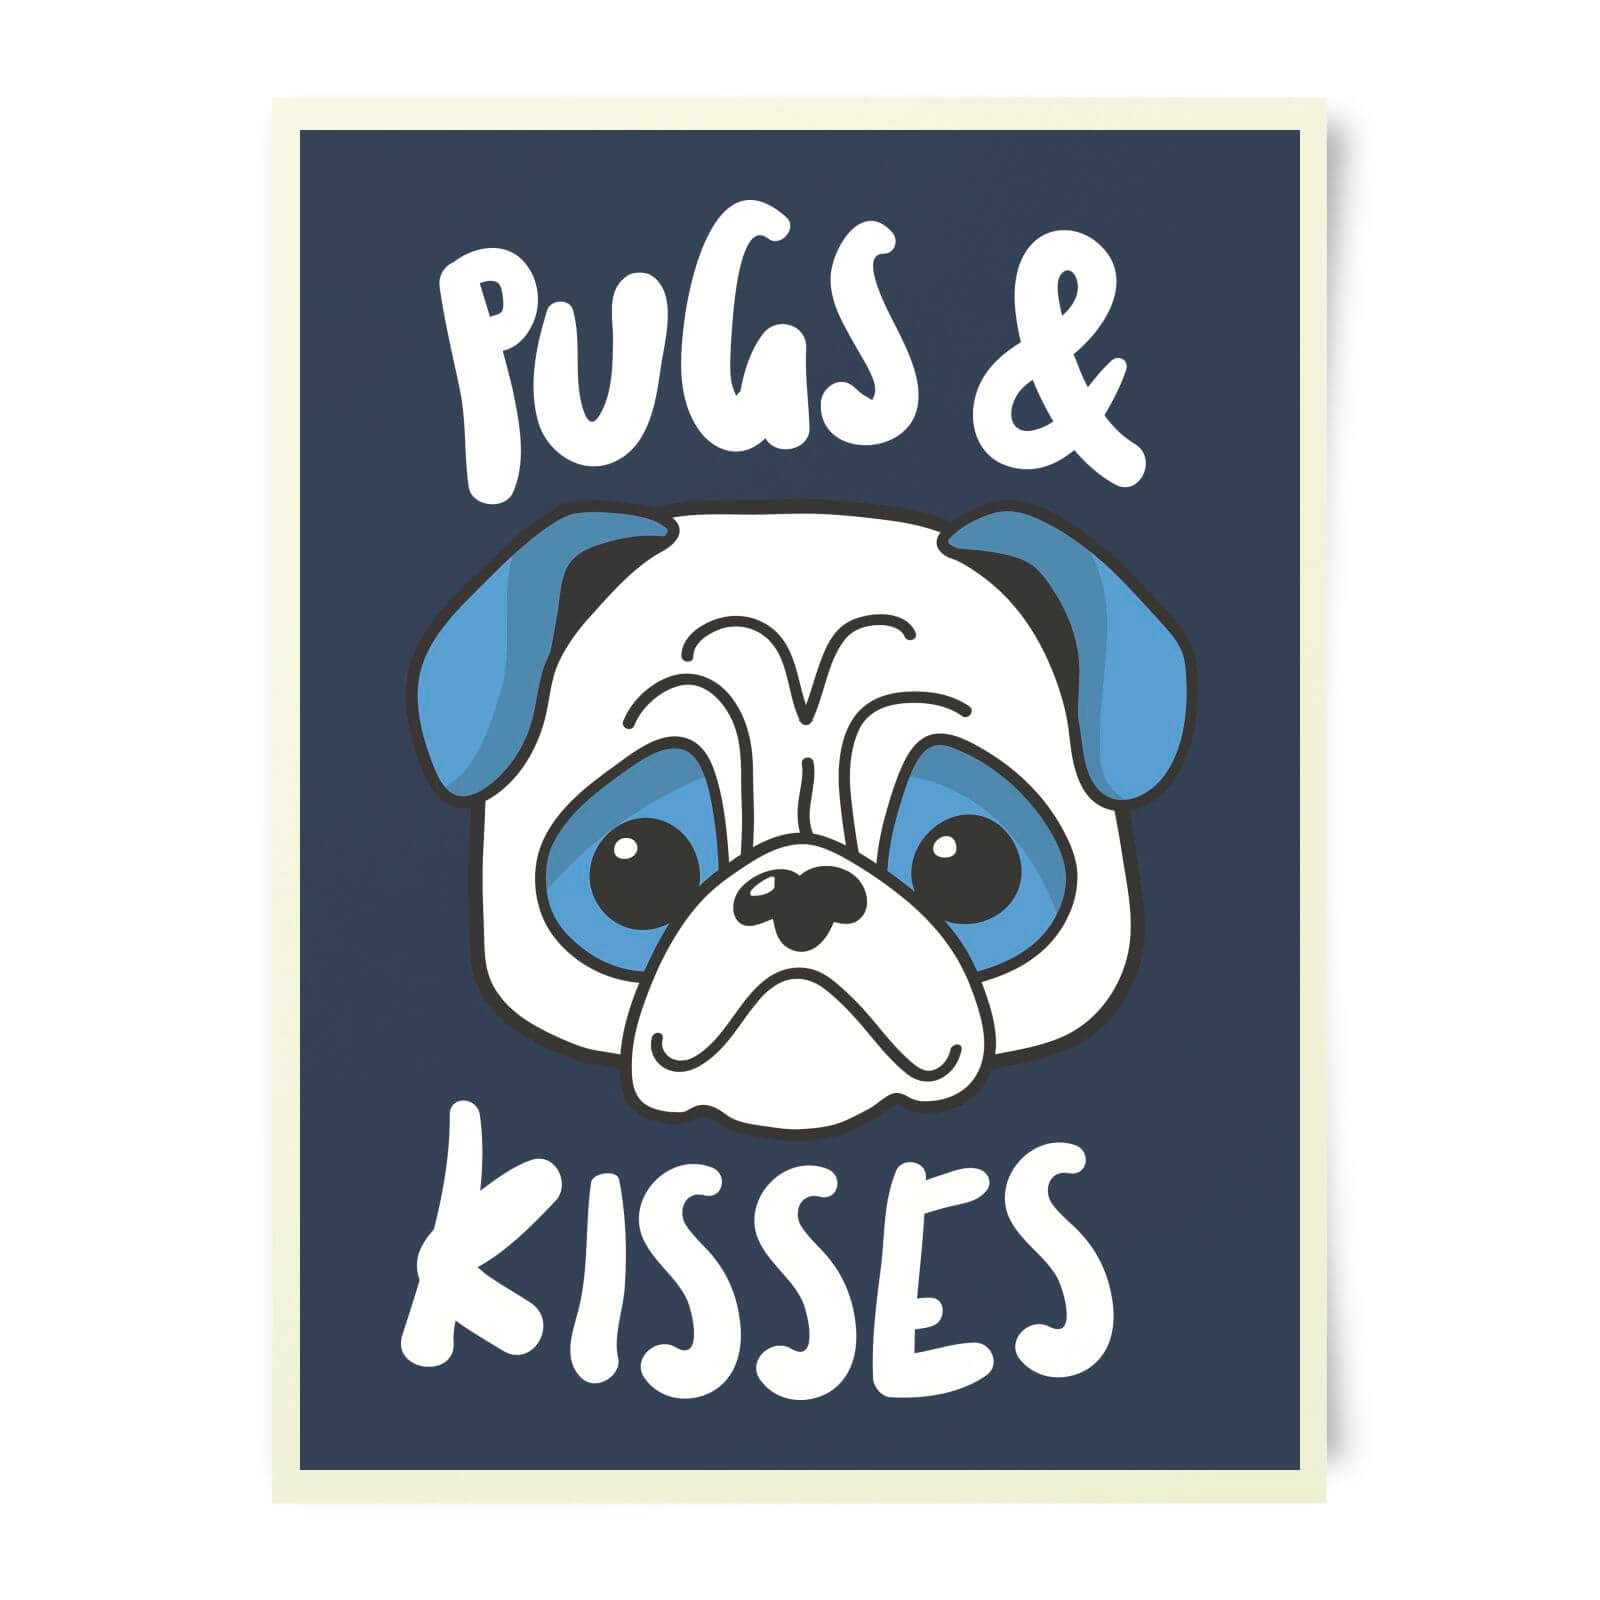 Pugs & Kisses Art Print